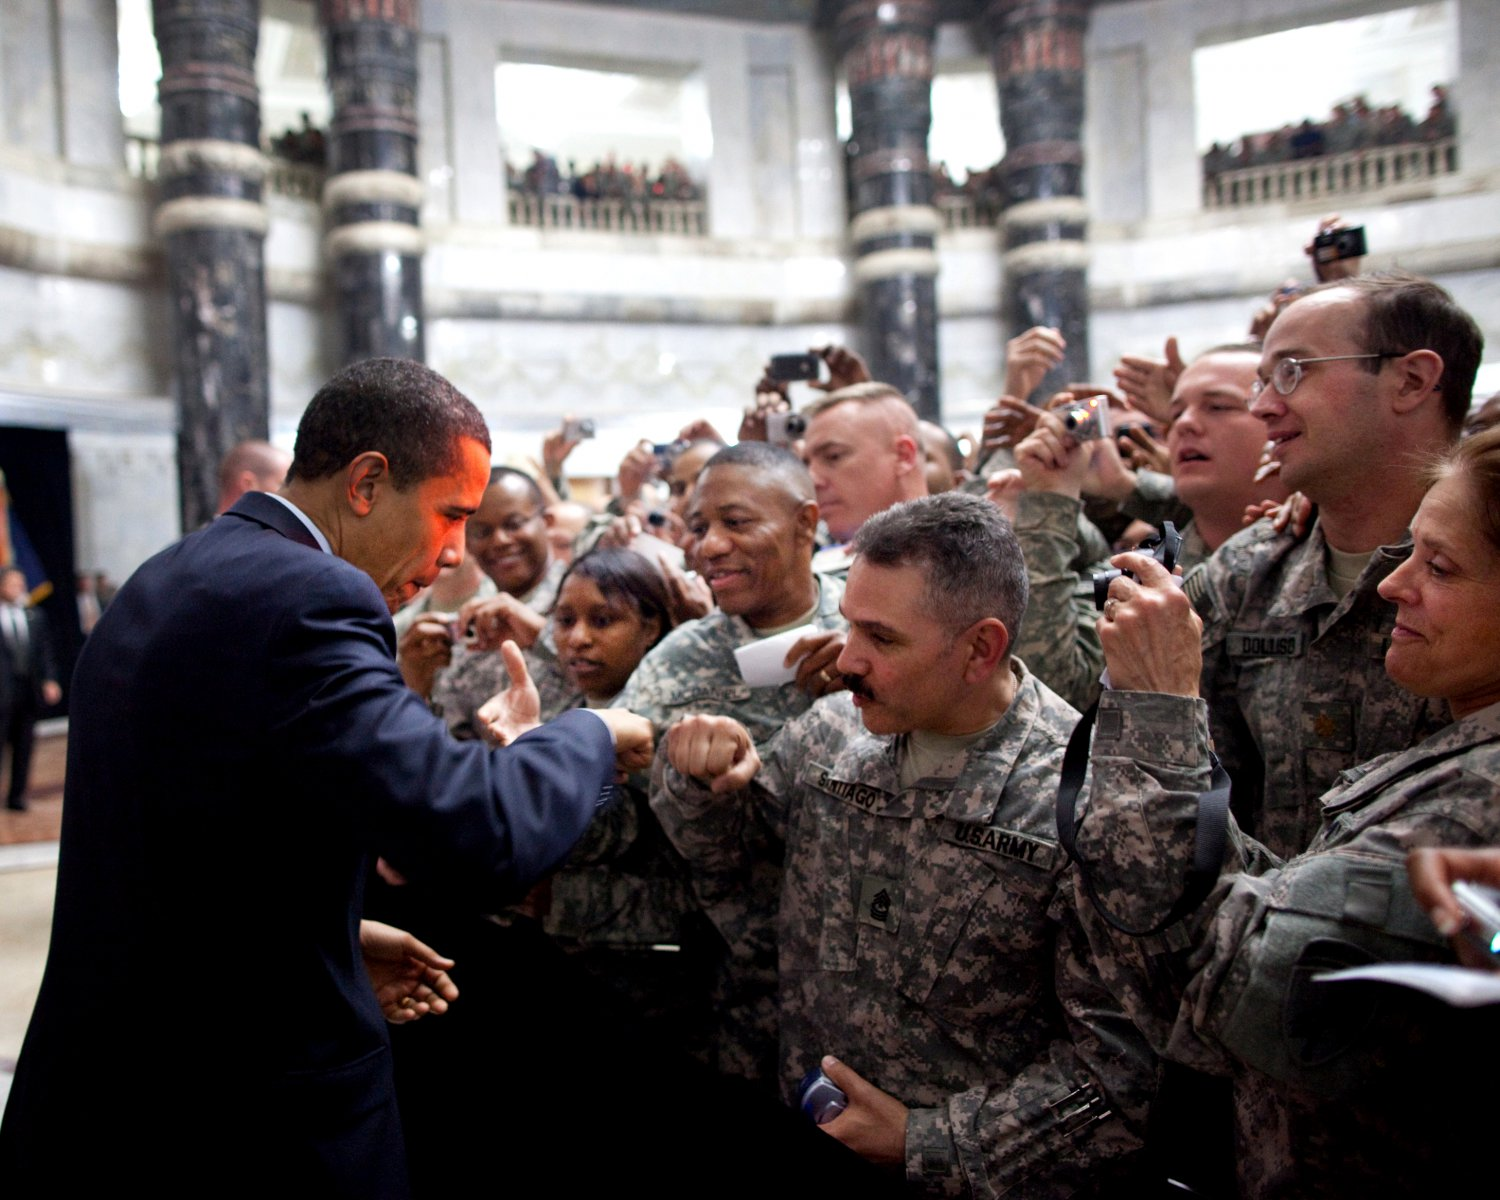 PRESIDENT BARACK OBAMA FIST-BUMPS WITH A SOLDIER IN IRAQ